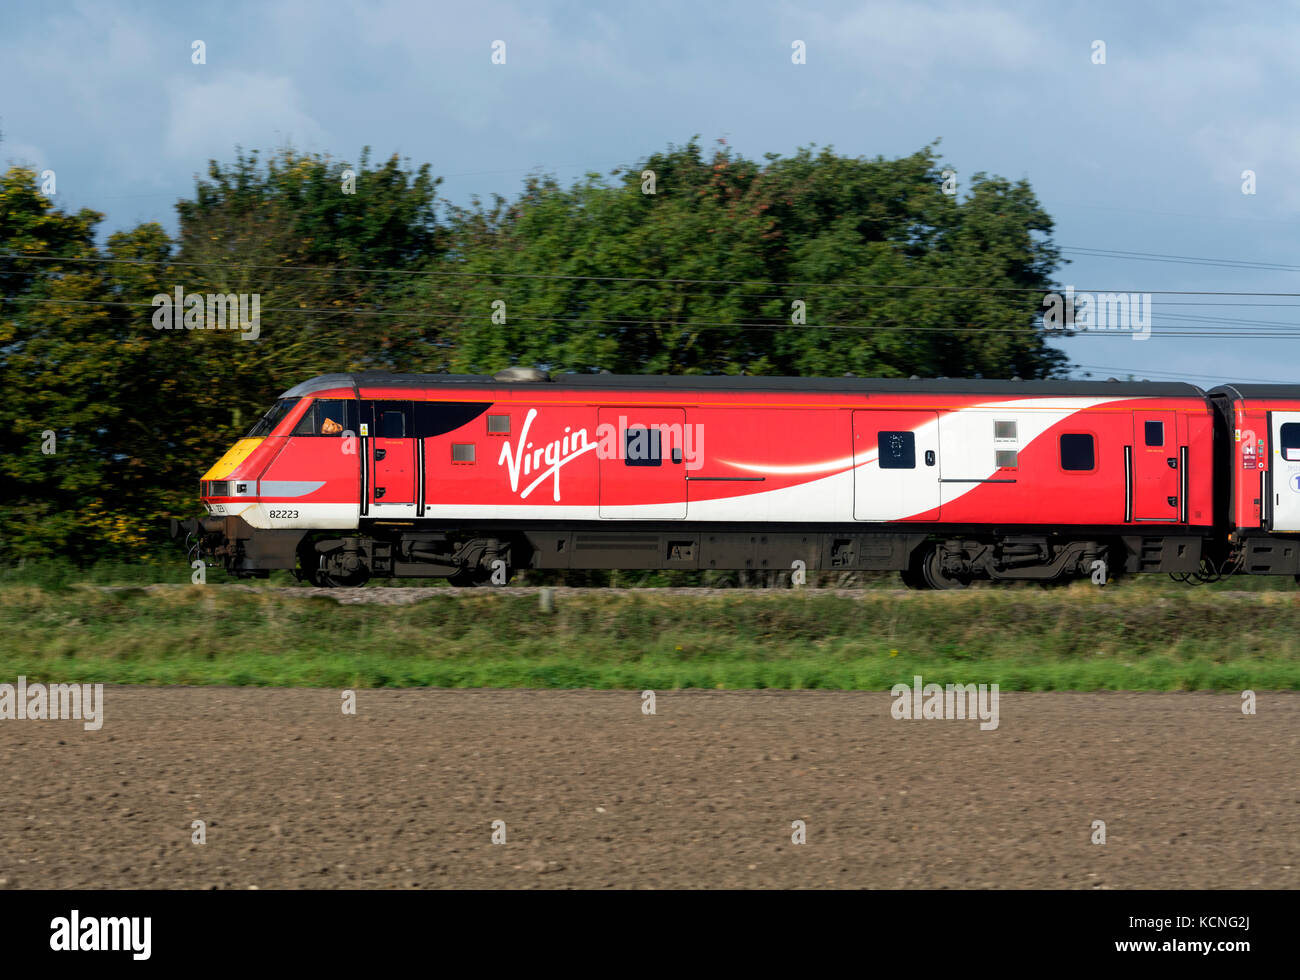 Virgin Trains Livery Stock Photos & Virgin Trains Livery Stock